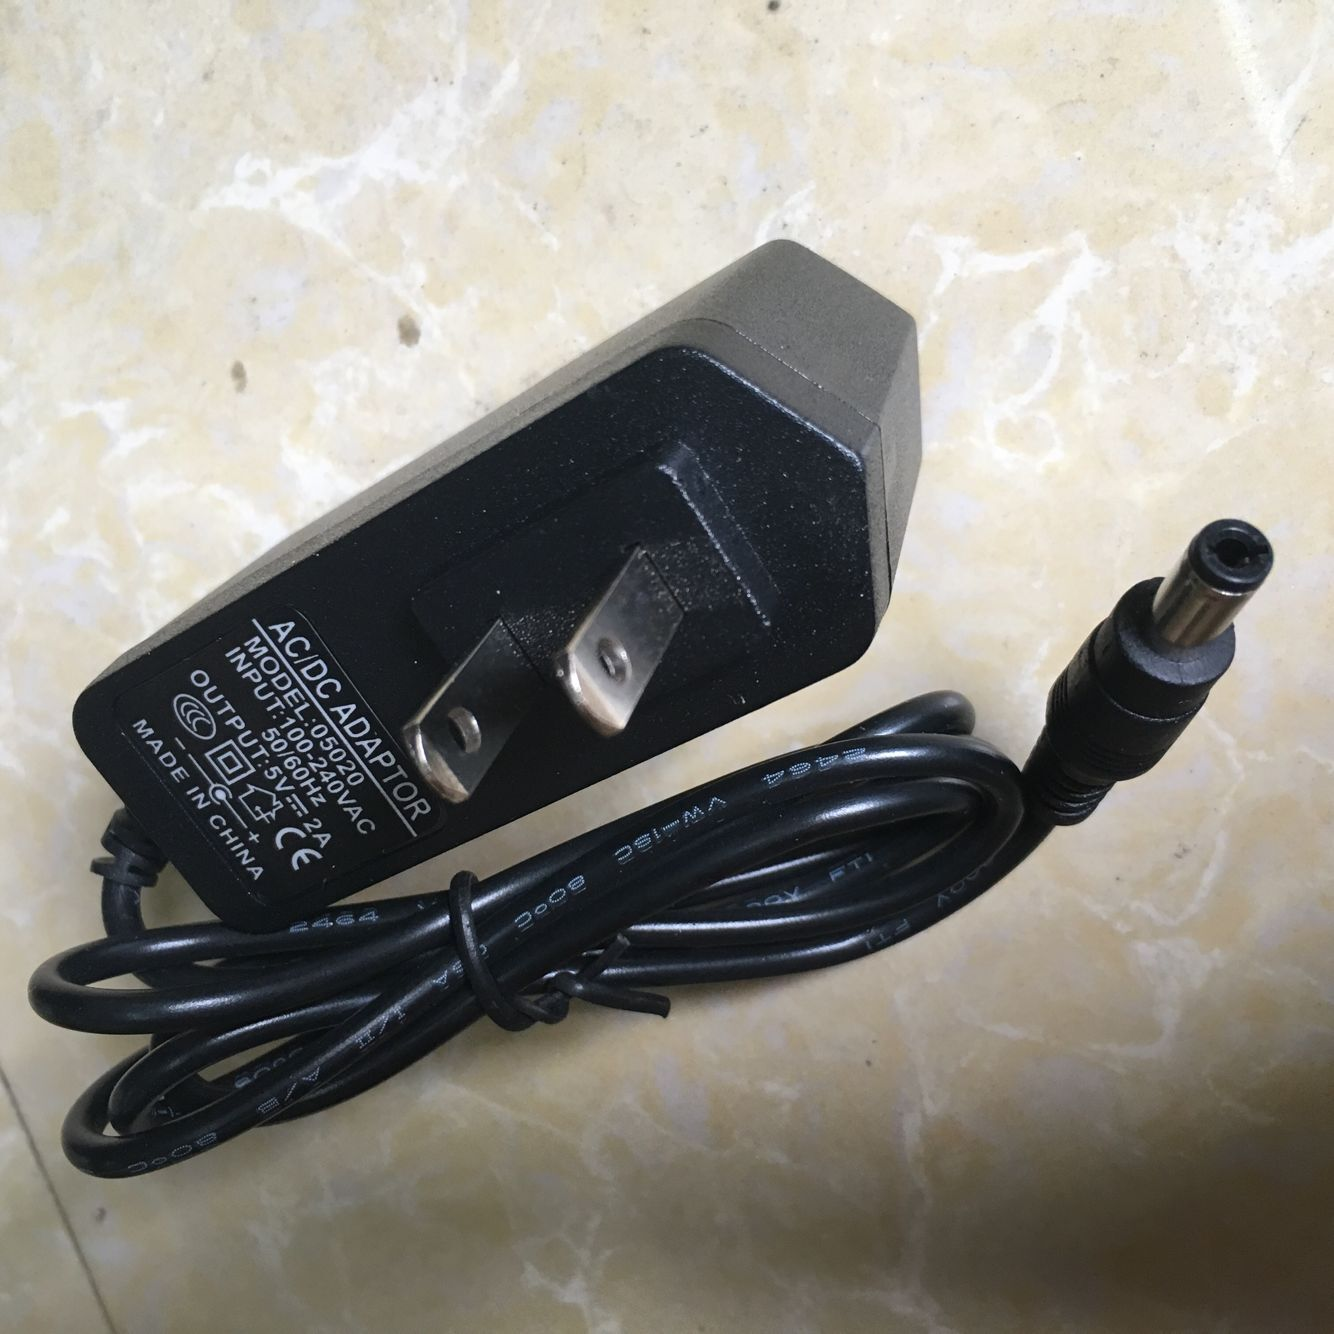 Rw-821s monitoring power adapter for head shaking wireless probe 5v2000ma transformer 5v2a